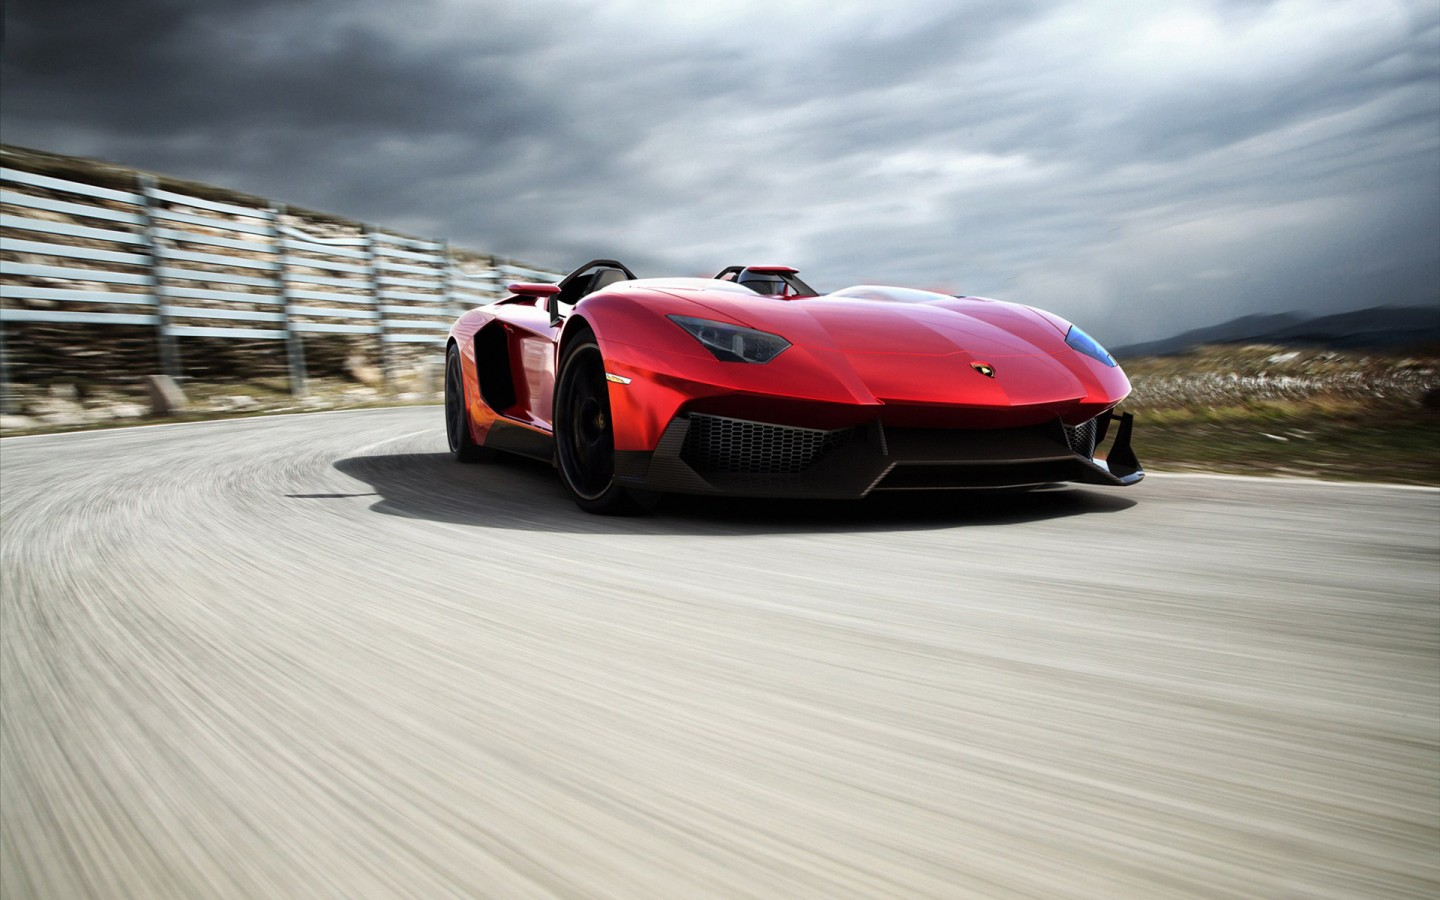 Lamborghini Aventador J 2012 2 Wallpaper | HD Car Wallpapers